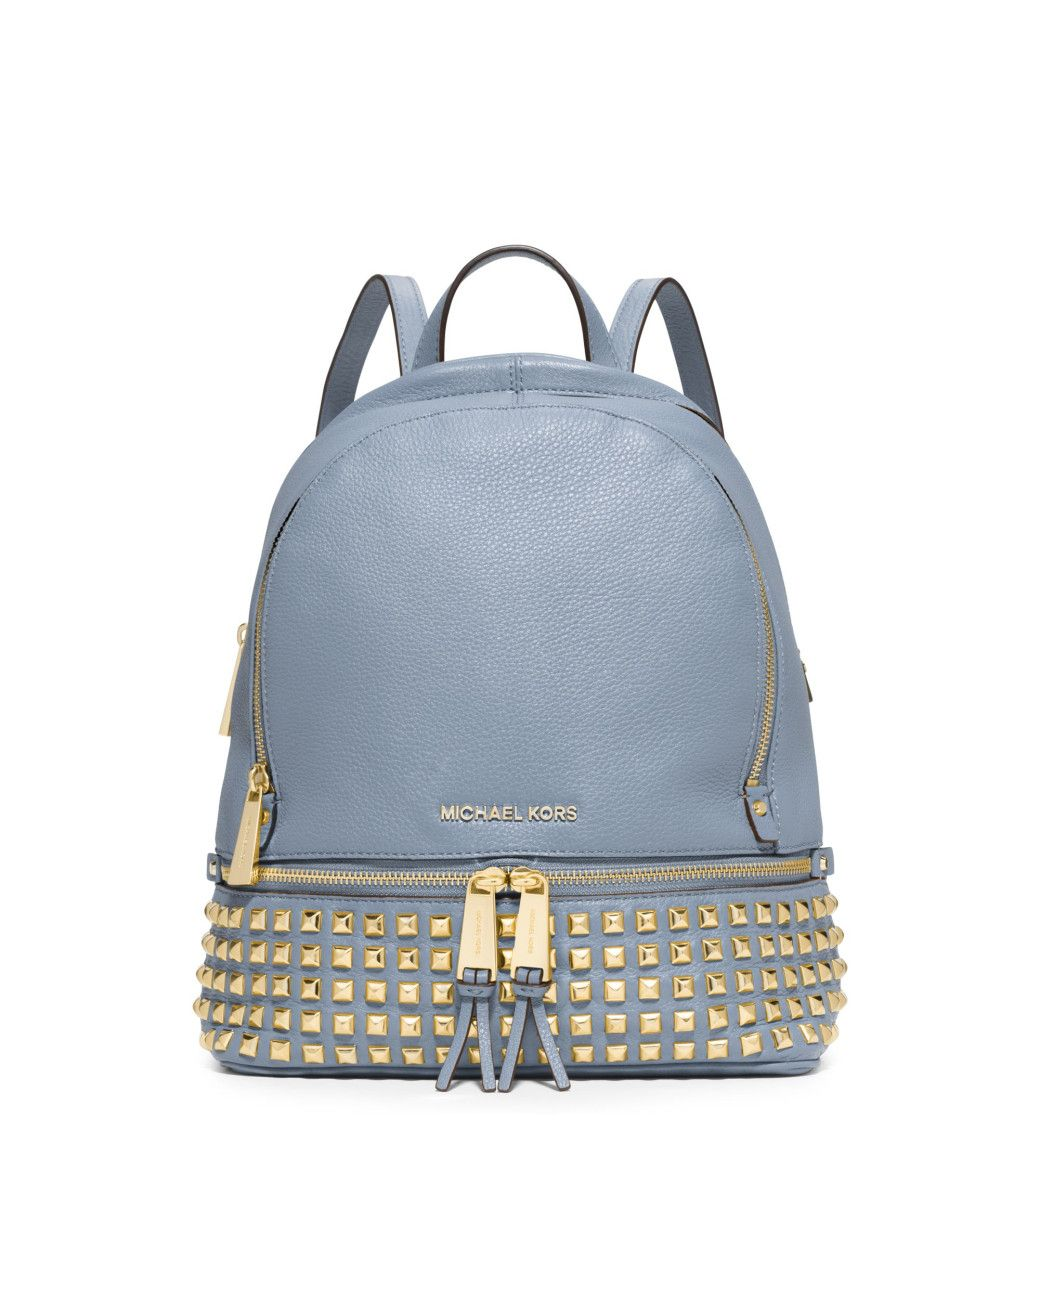 Michael Kors   Blue Rhea Small Studded Leather Backpack   Lyst   bags    Pinterest   Studded leather, Backpacks and Michael kors b73aeedda8